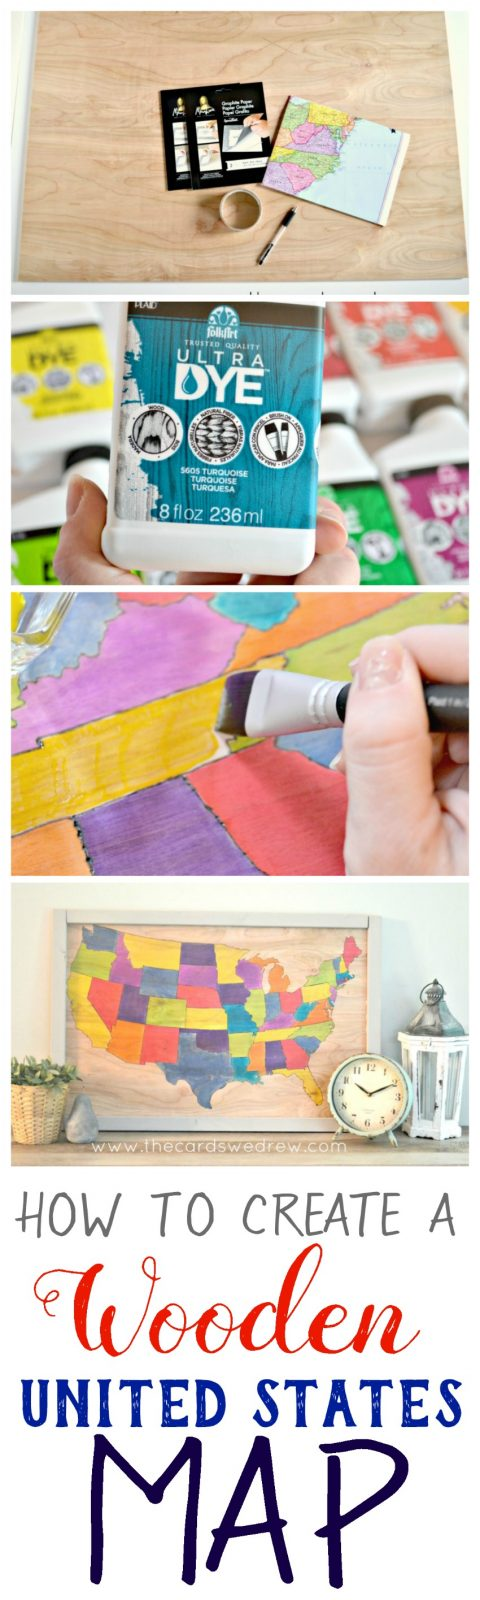 How to Create a Wooden United States Map from The Cards We Drew